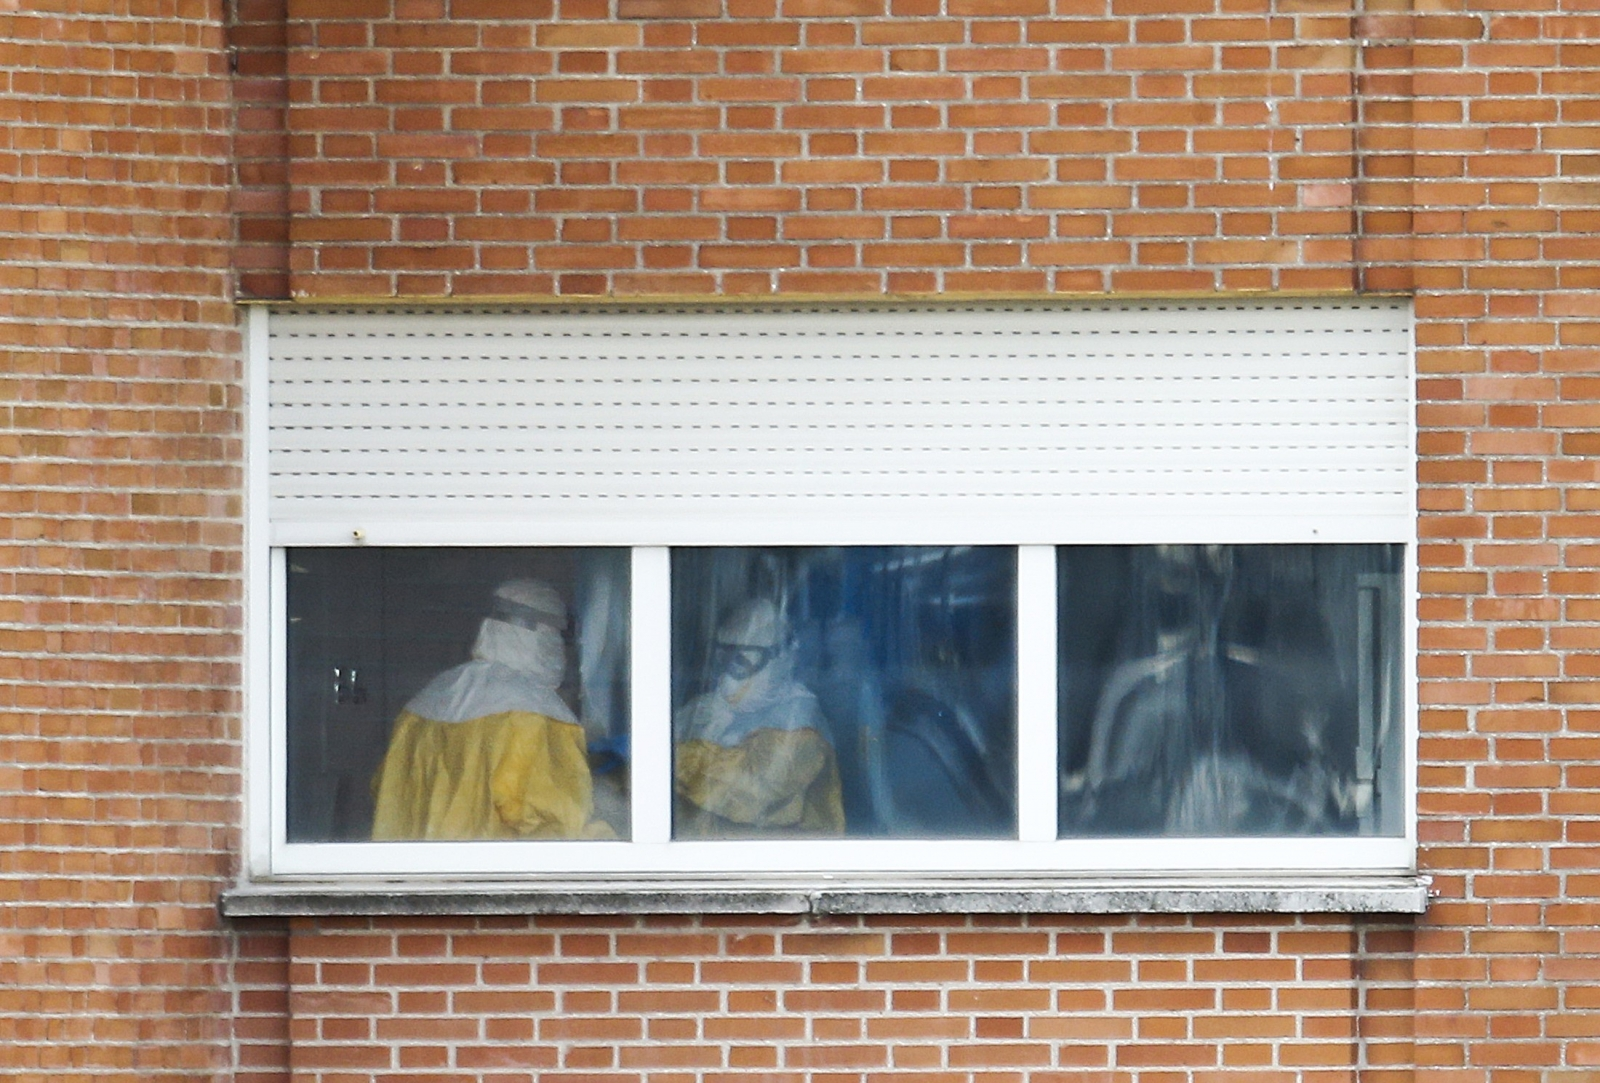 Activity in Madrid Hospital's Ebola Unit under Close Scrutiny